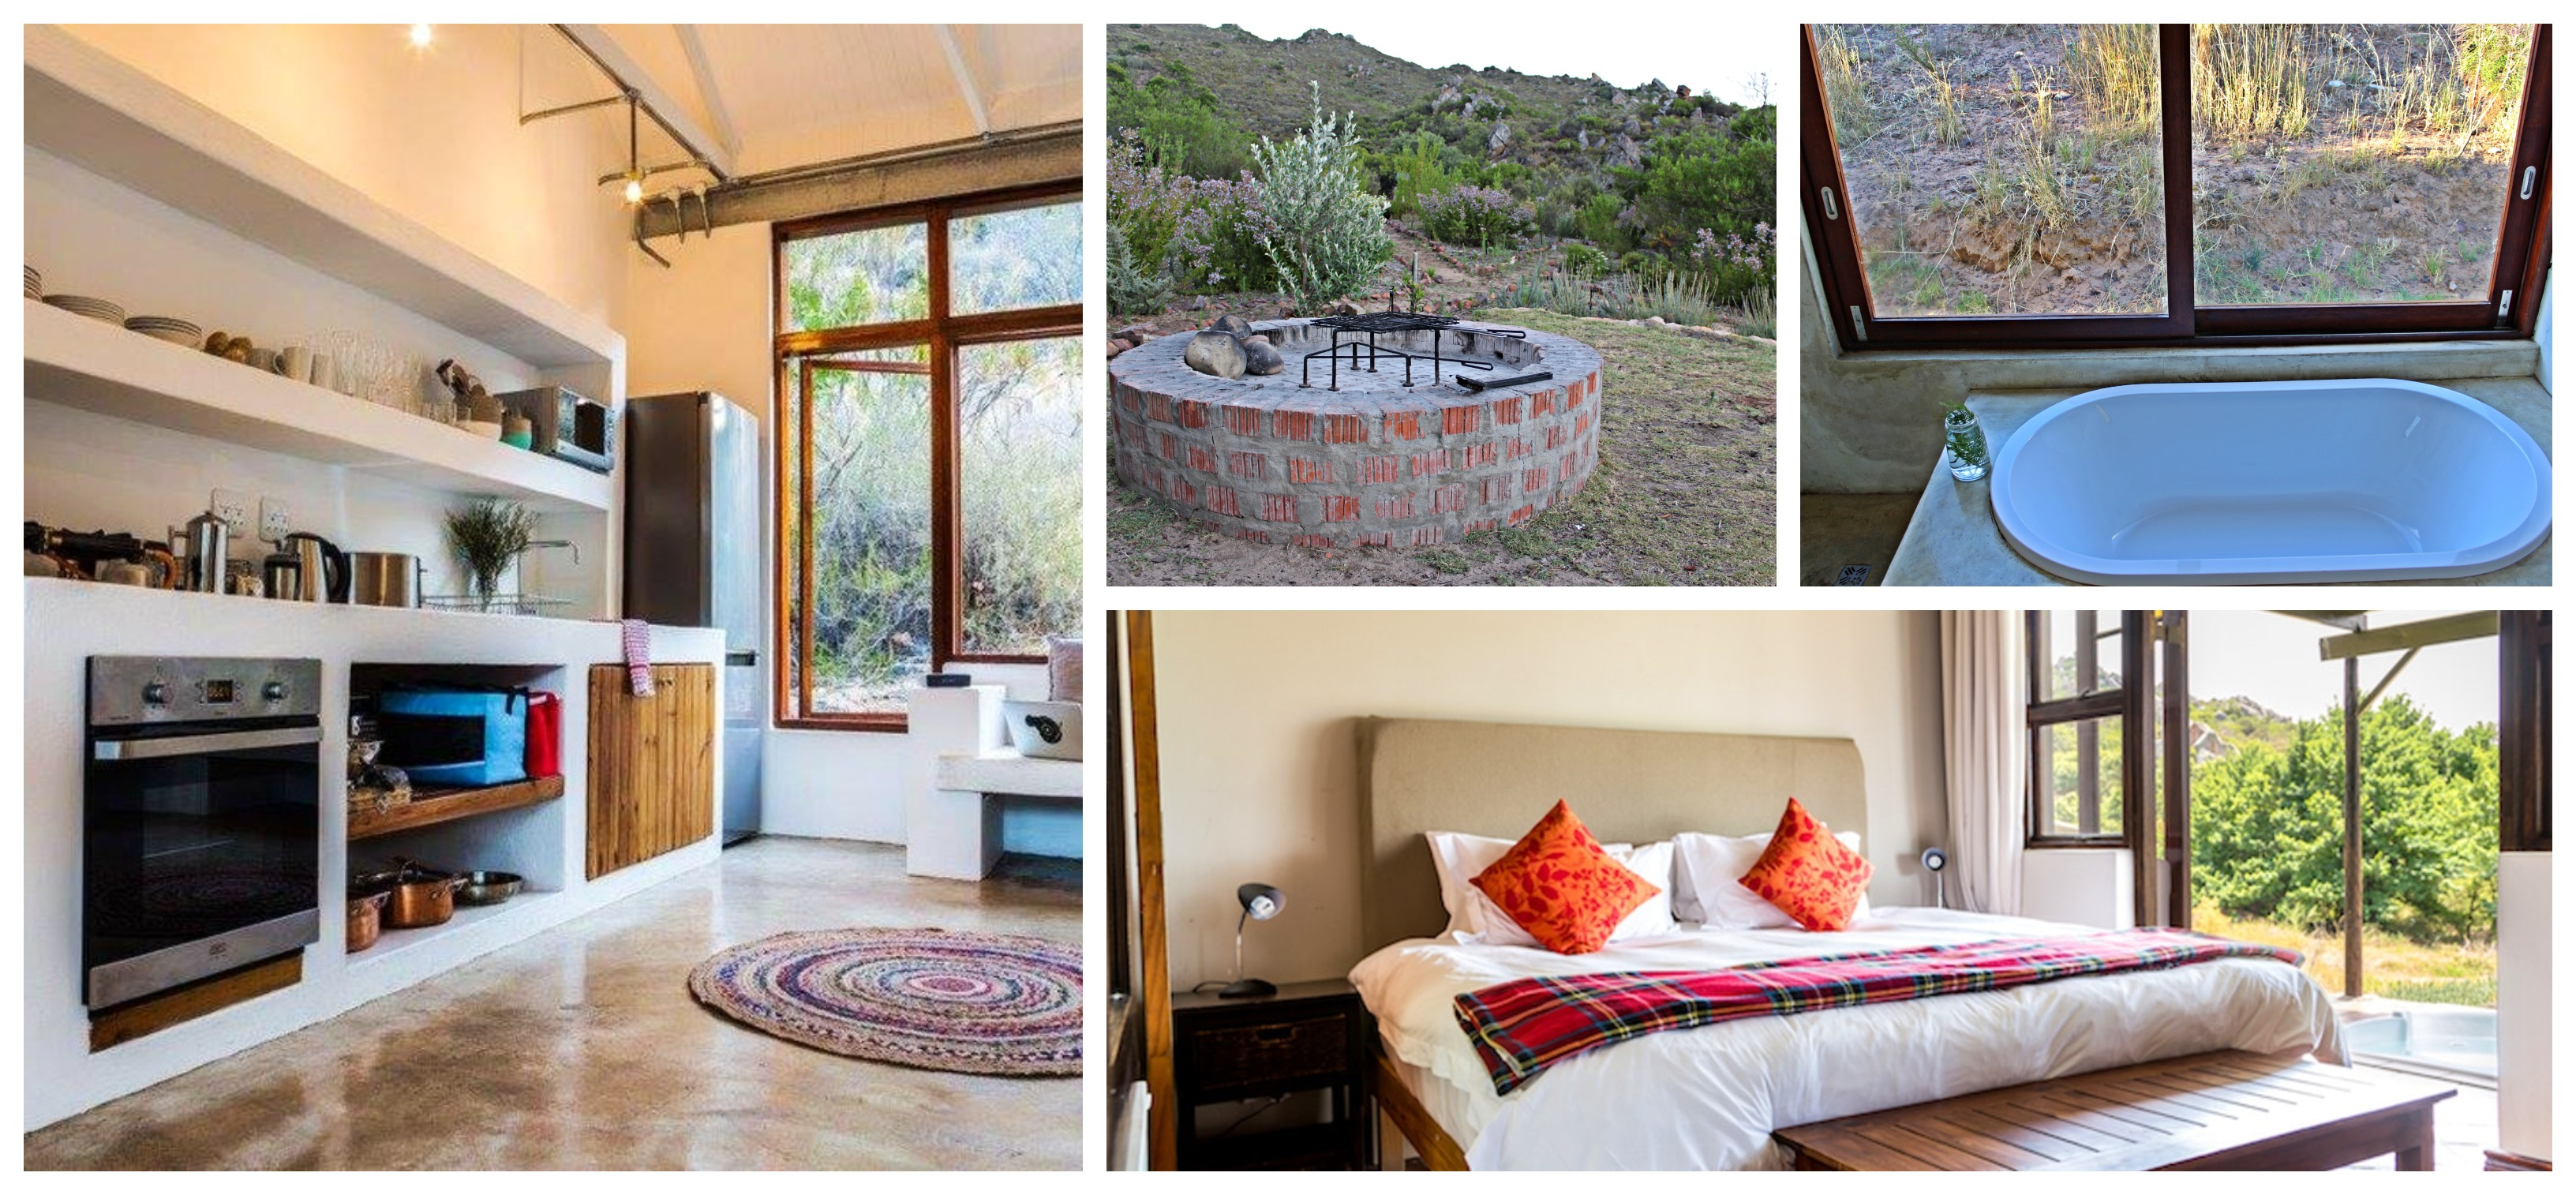 Inside a chalet at Cederkloof.   Photos left and bottom right: TravelGround